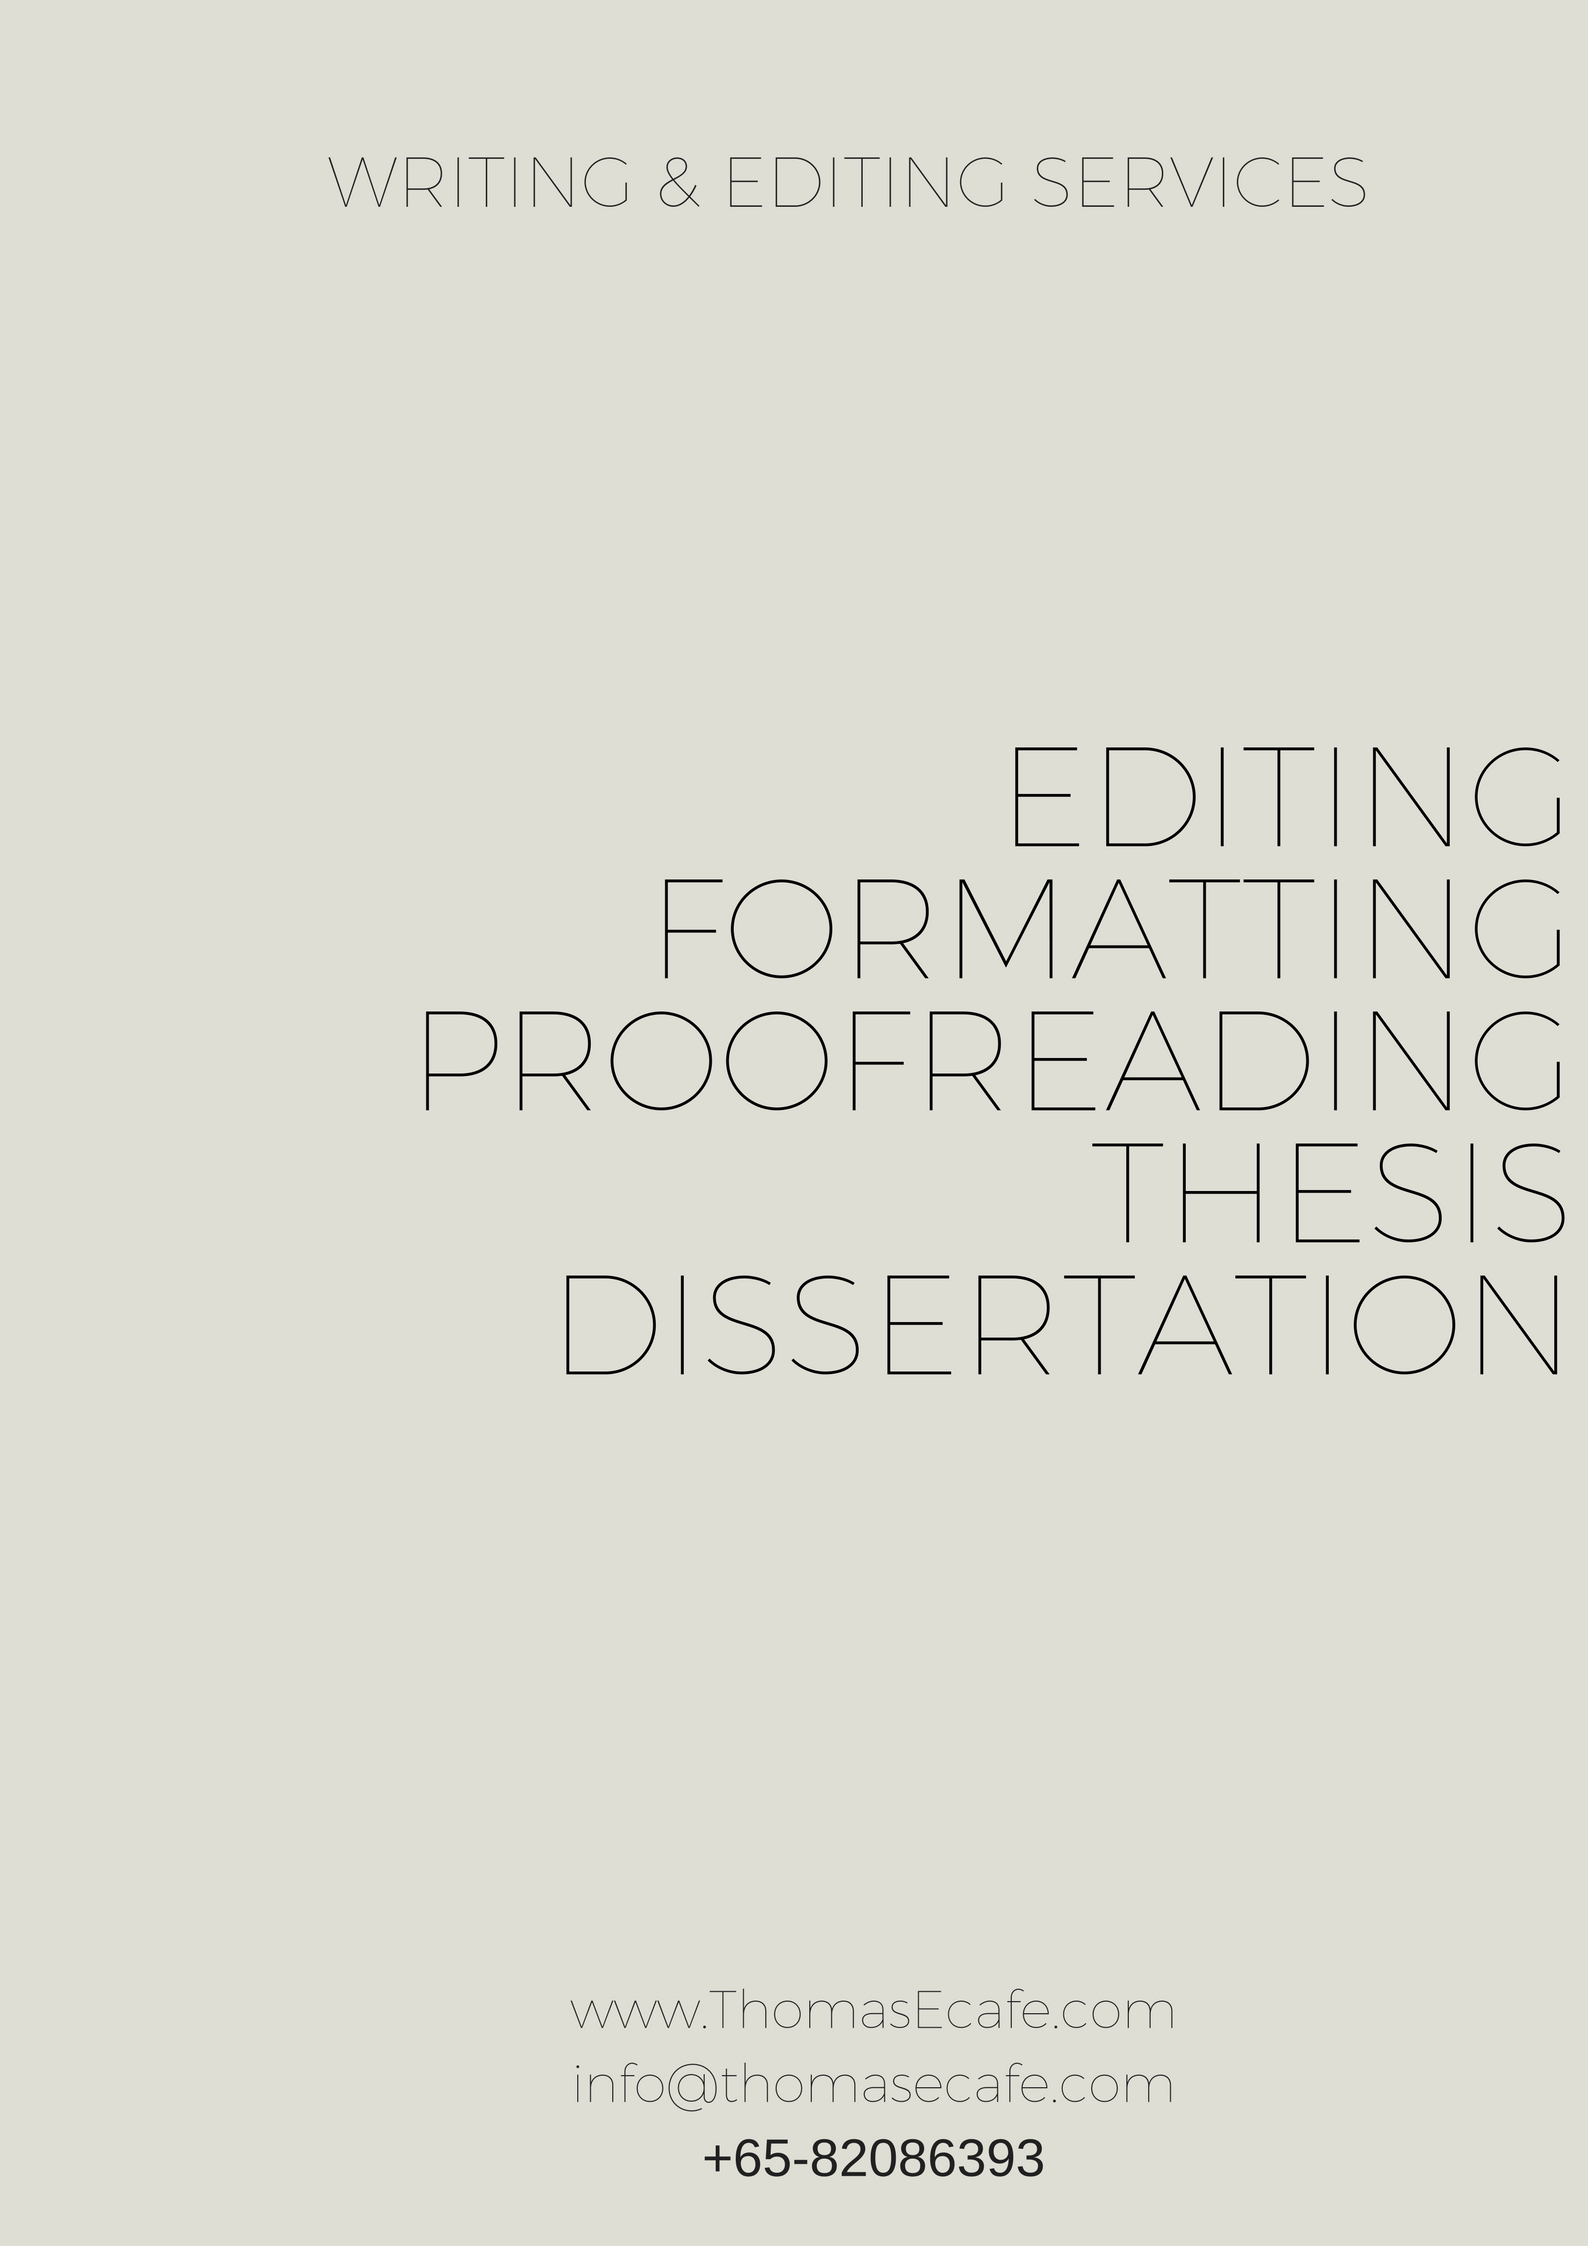 Dissertation layout and formatting